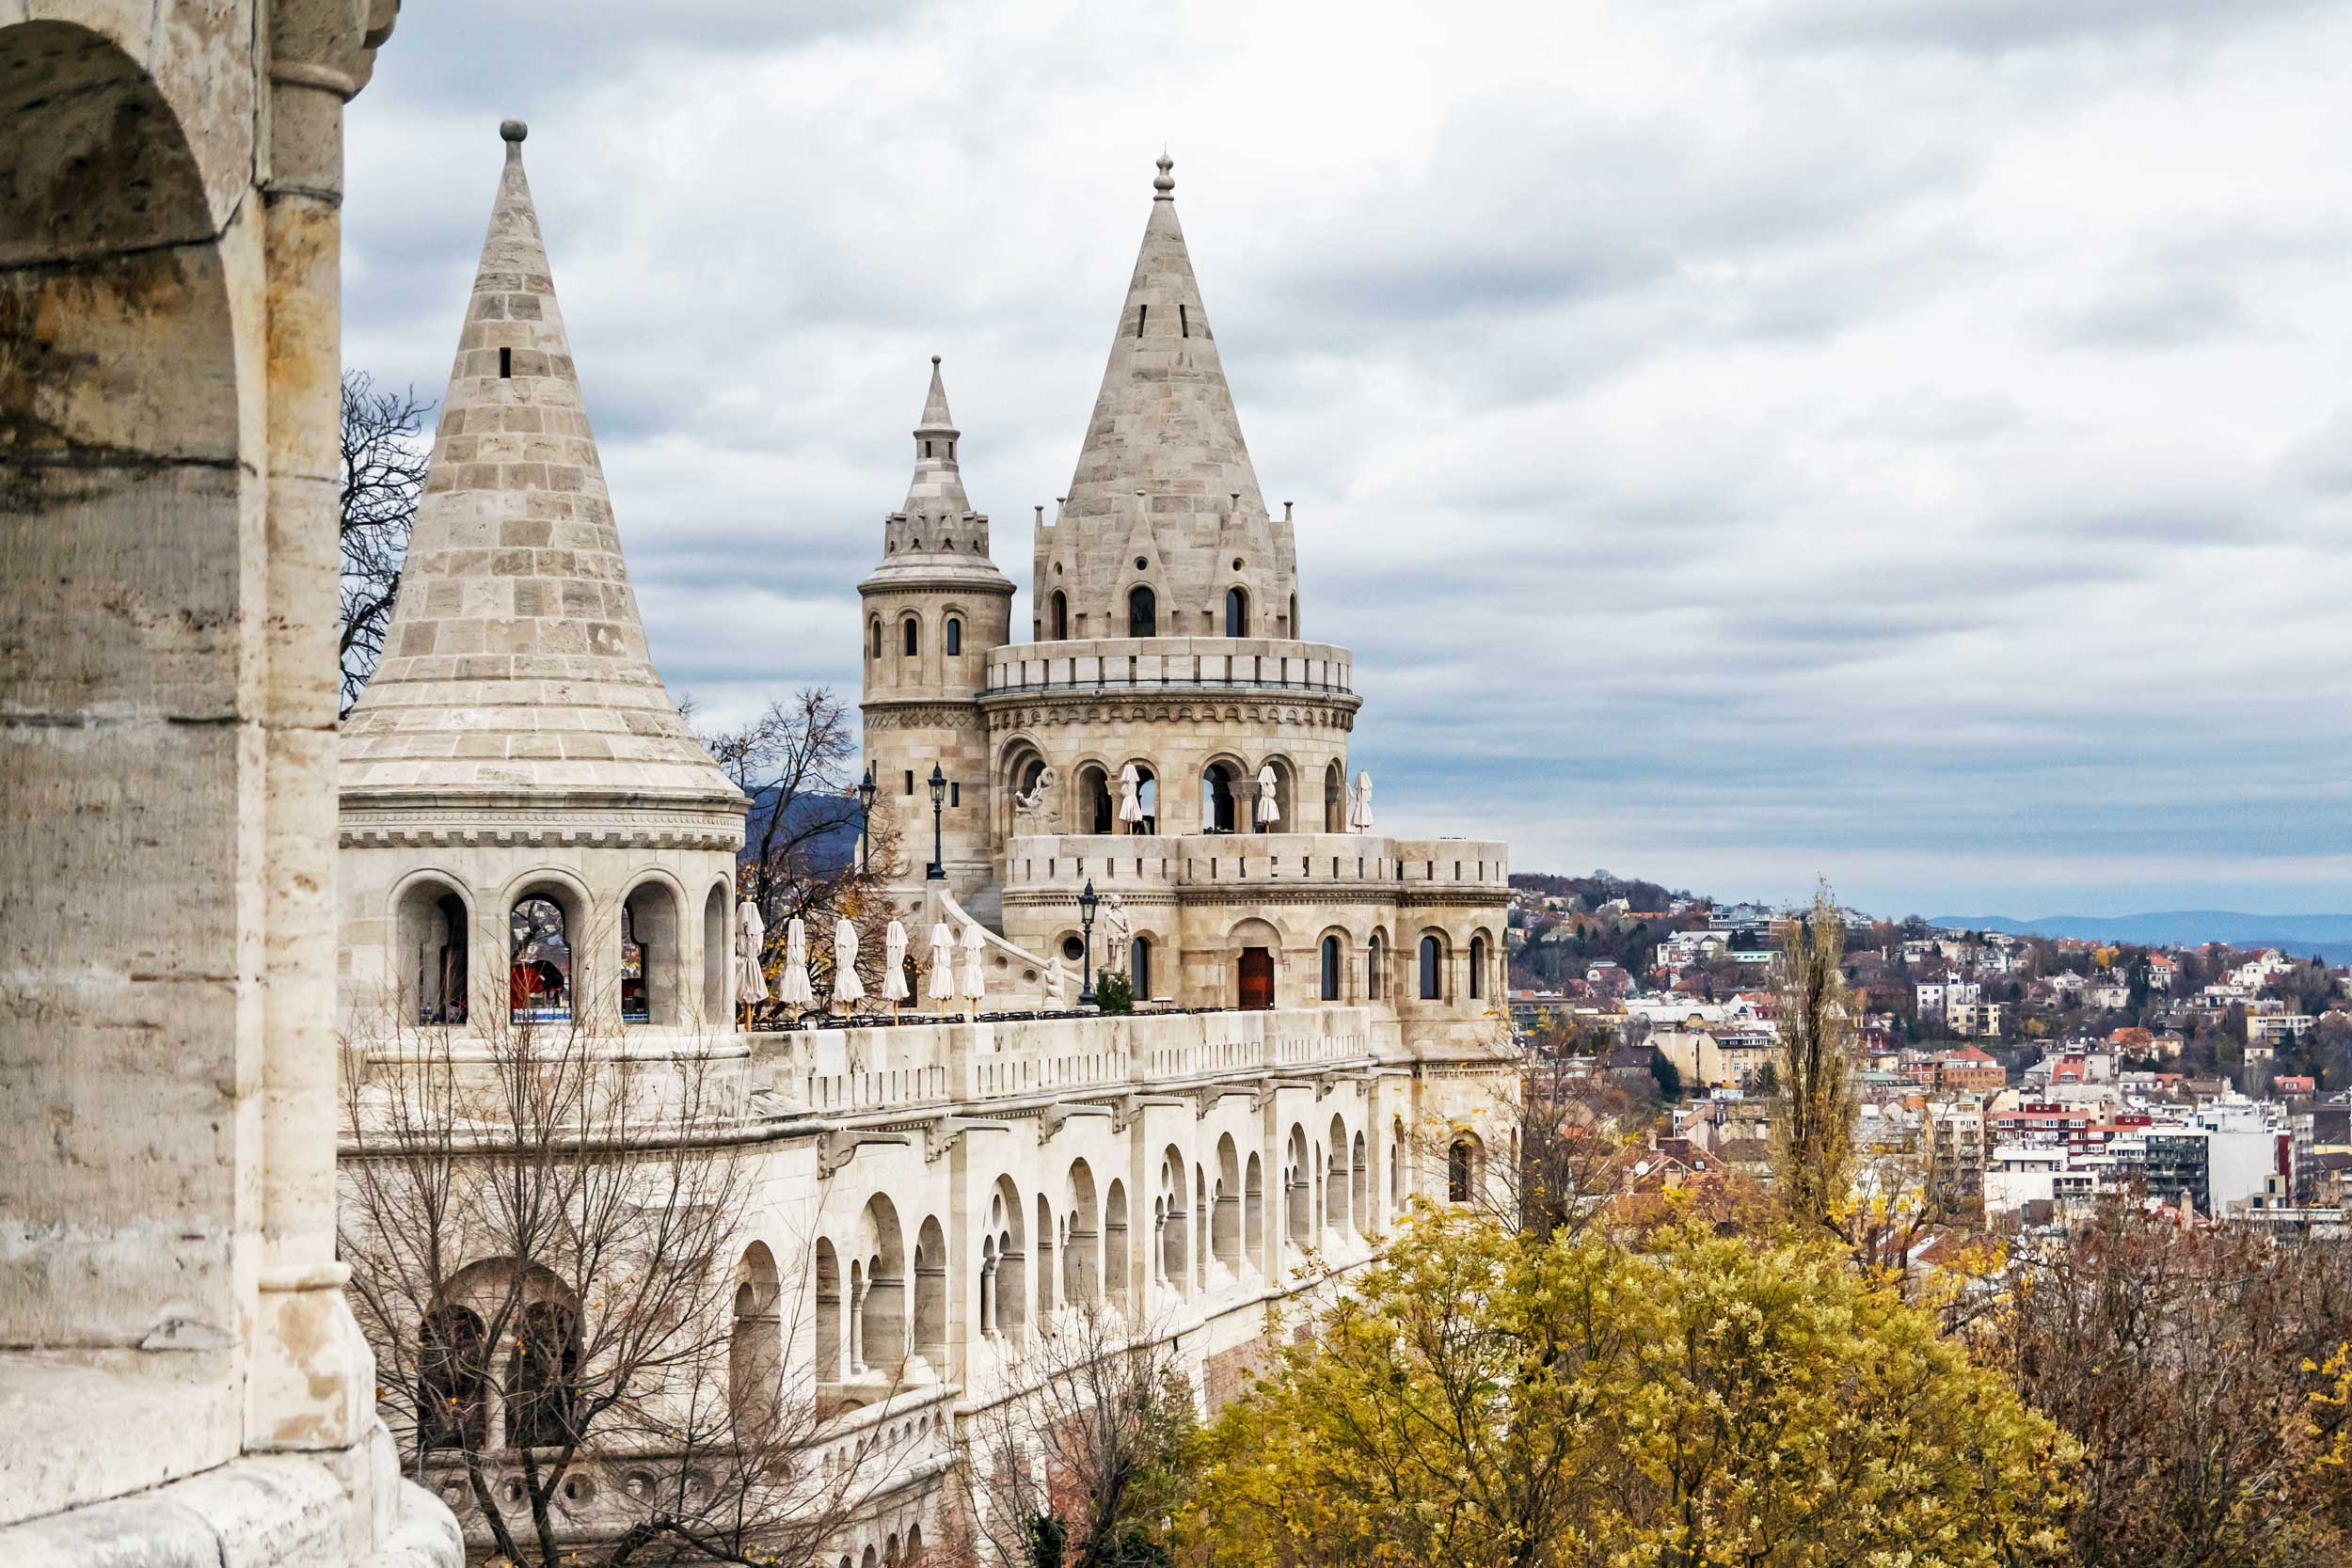 A medieval stone building with three turrets overlooking Budapest, Hungary